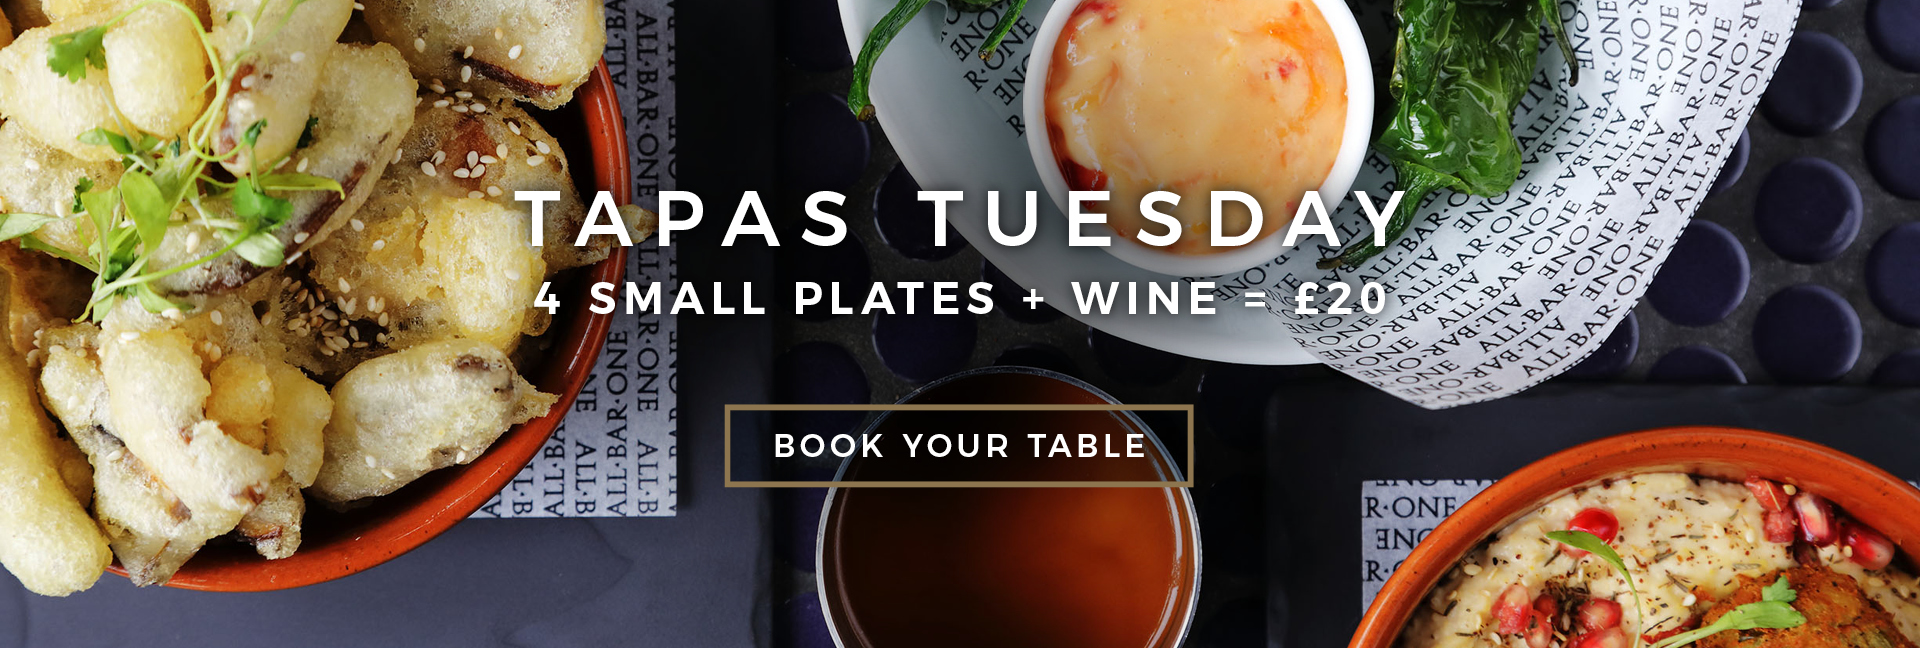 Tapas Tuesday at All Bar One Butlers Wharf - Book now